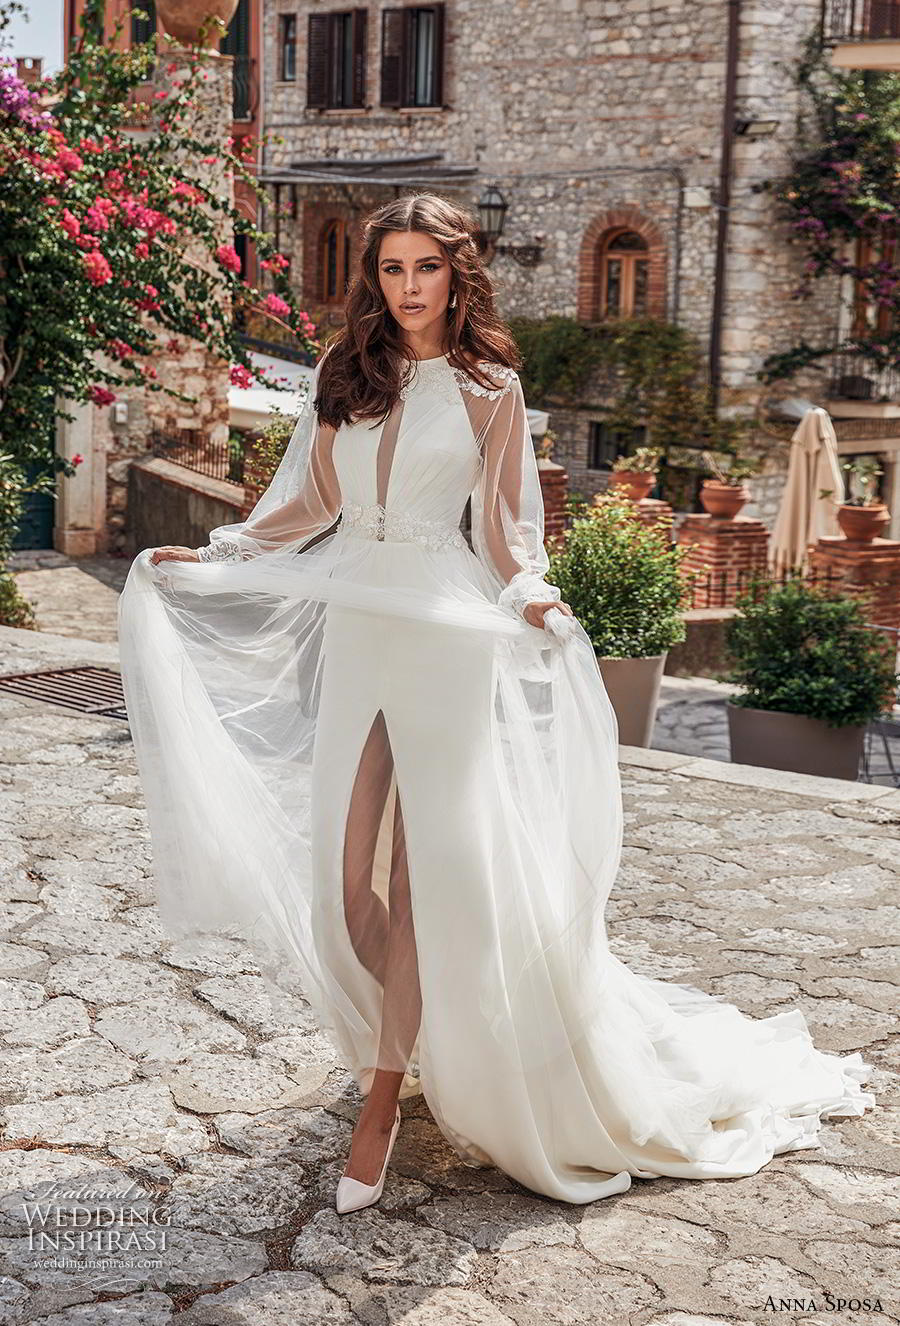 anna sposa 2019 bridal long bishop sleeves illusion jewel halter neck simple slit skirt sheath wedding dress a  line overskirt keyhole bodice chapel train (18) mv